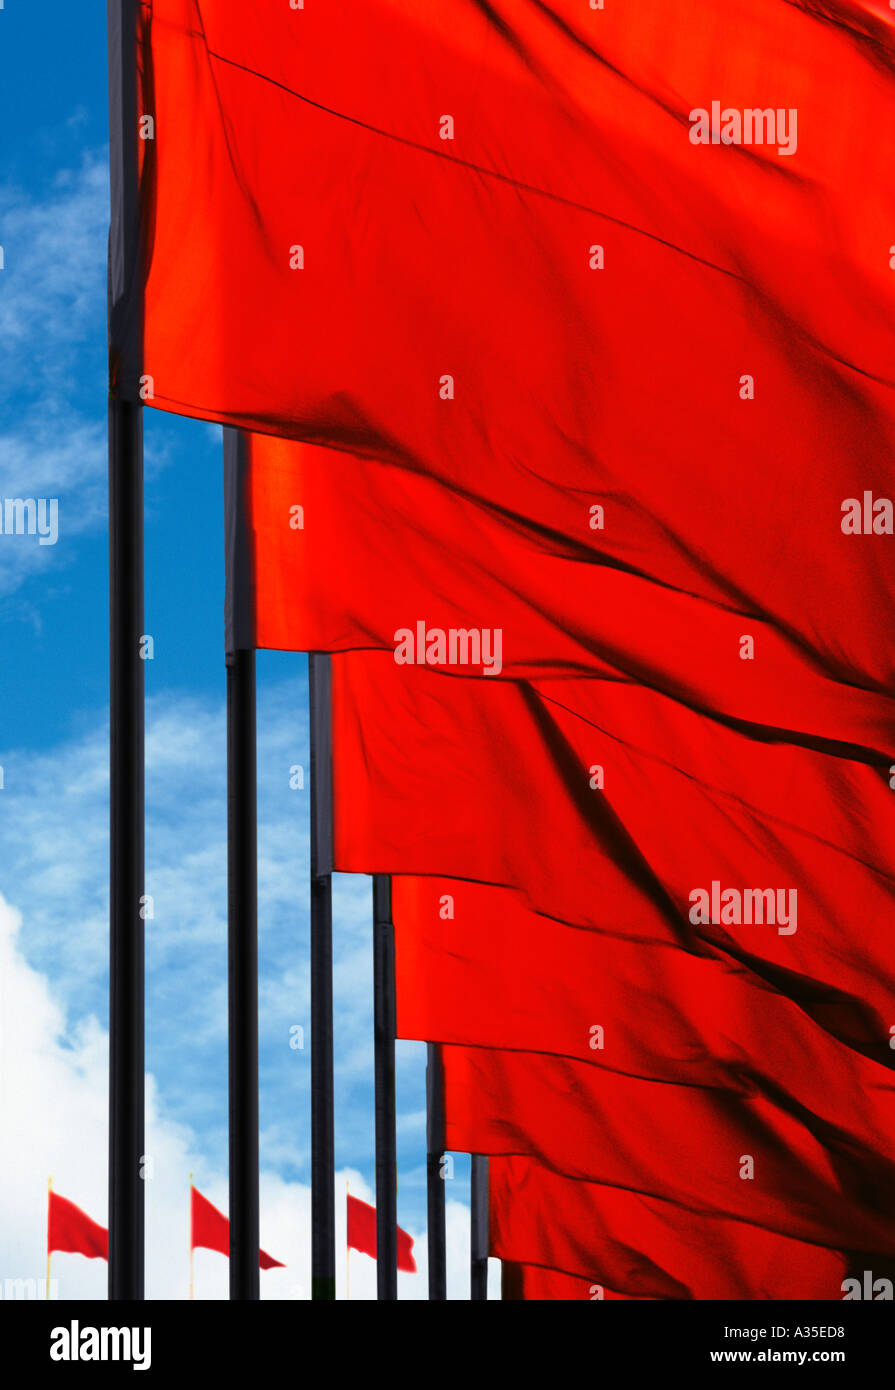 Red Flags - Stock Image